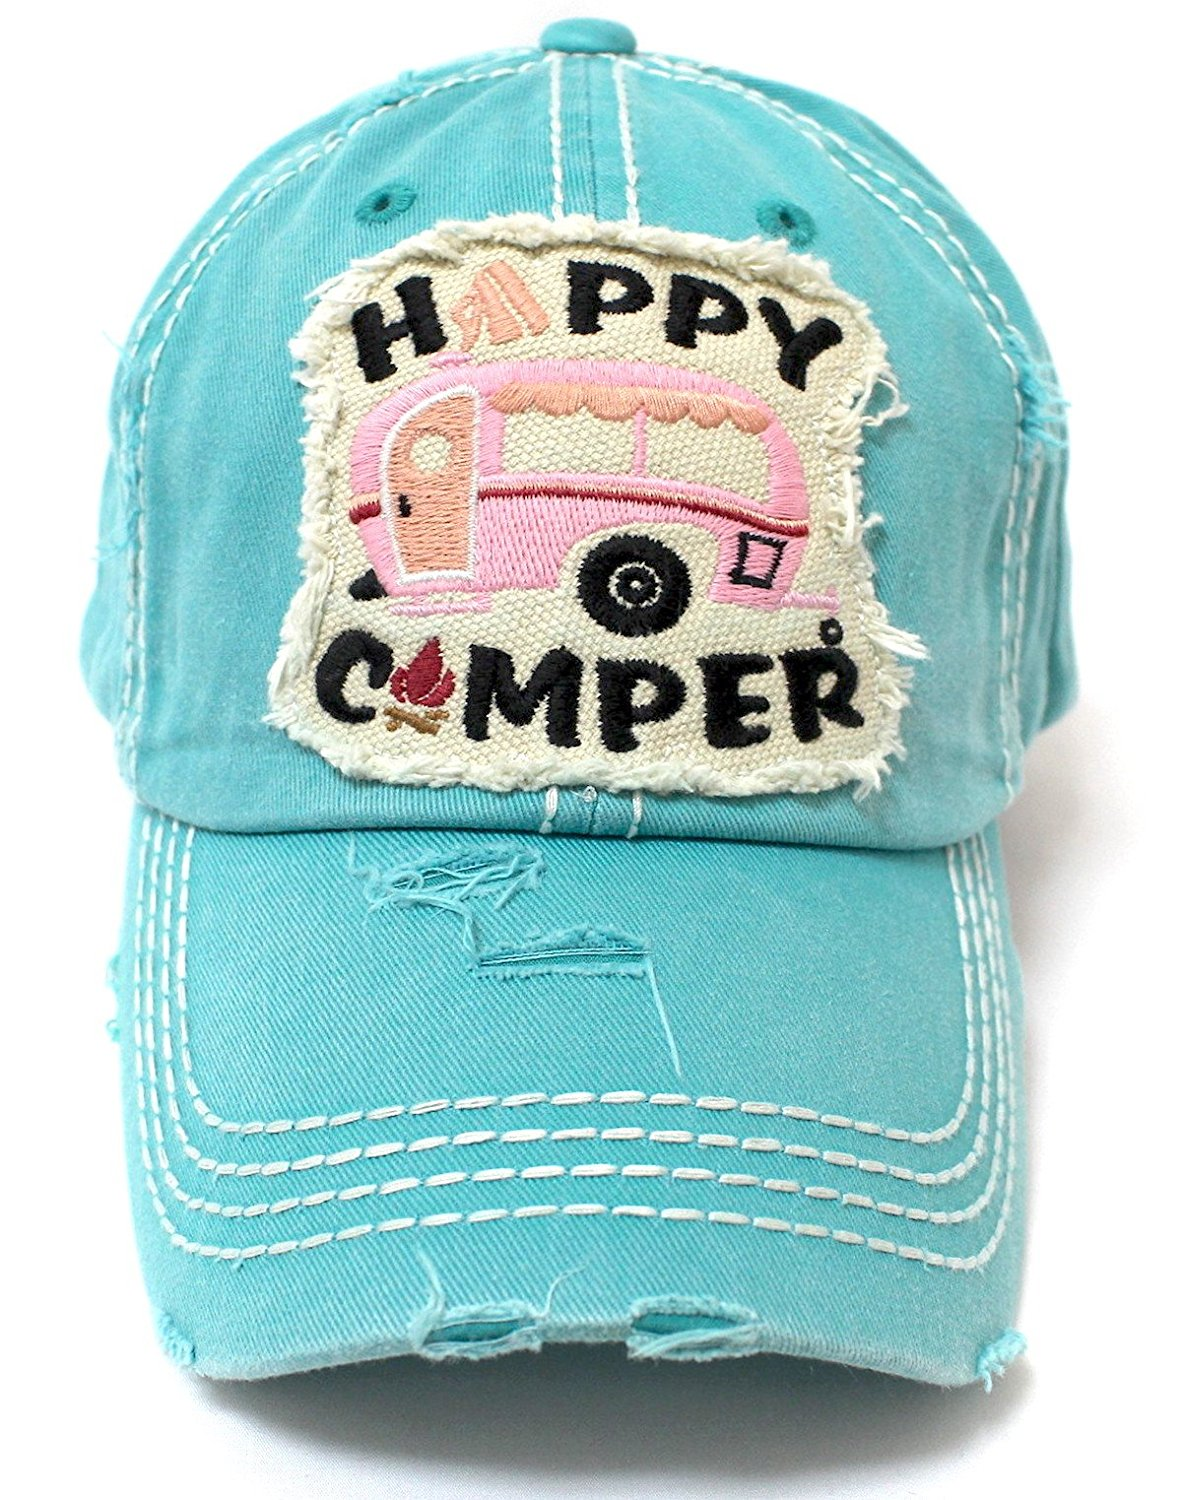 TIFFANY BLUE Happy Camper Camp Fire Patch Embroidery Baseball Hat - Caps 'N Vintage